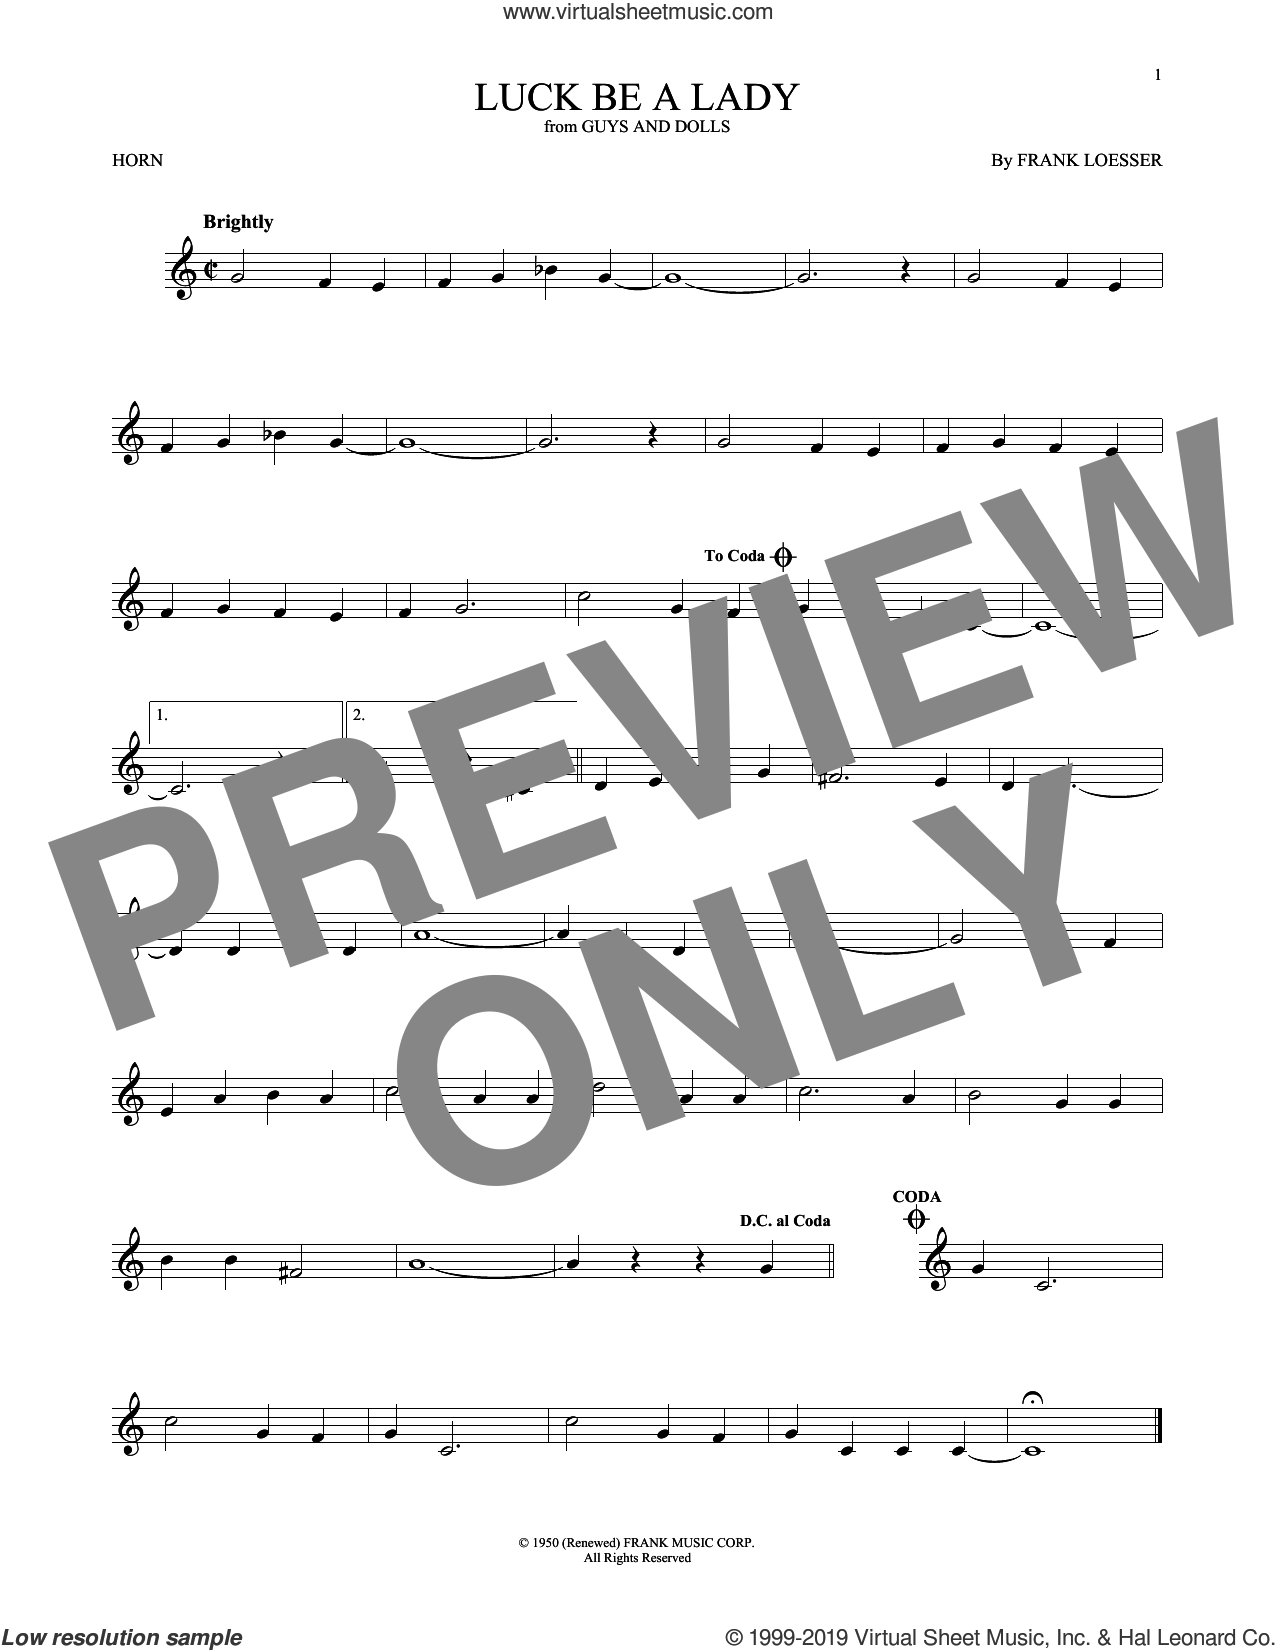 Luck Be A Lady sheet music for horn solo by Frank Loesser, intermediate skill level